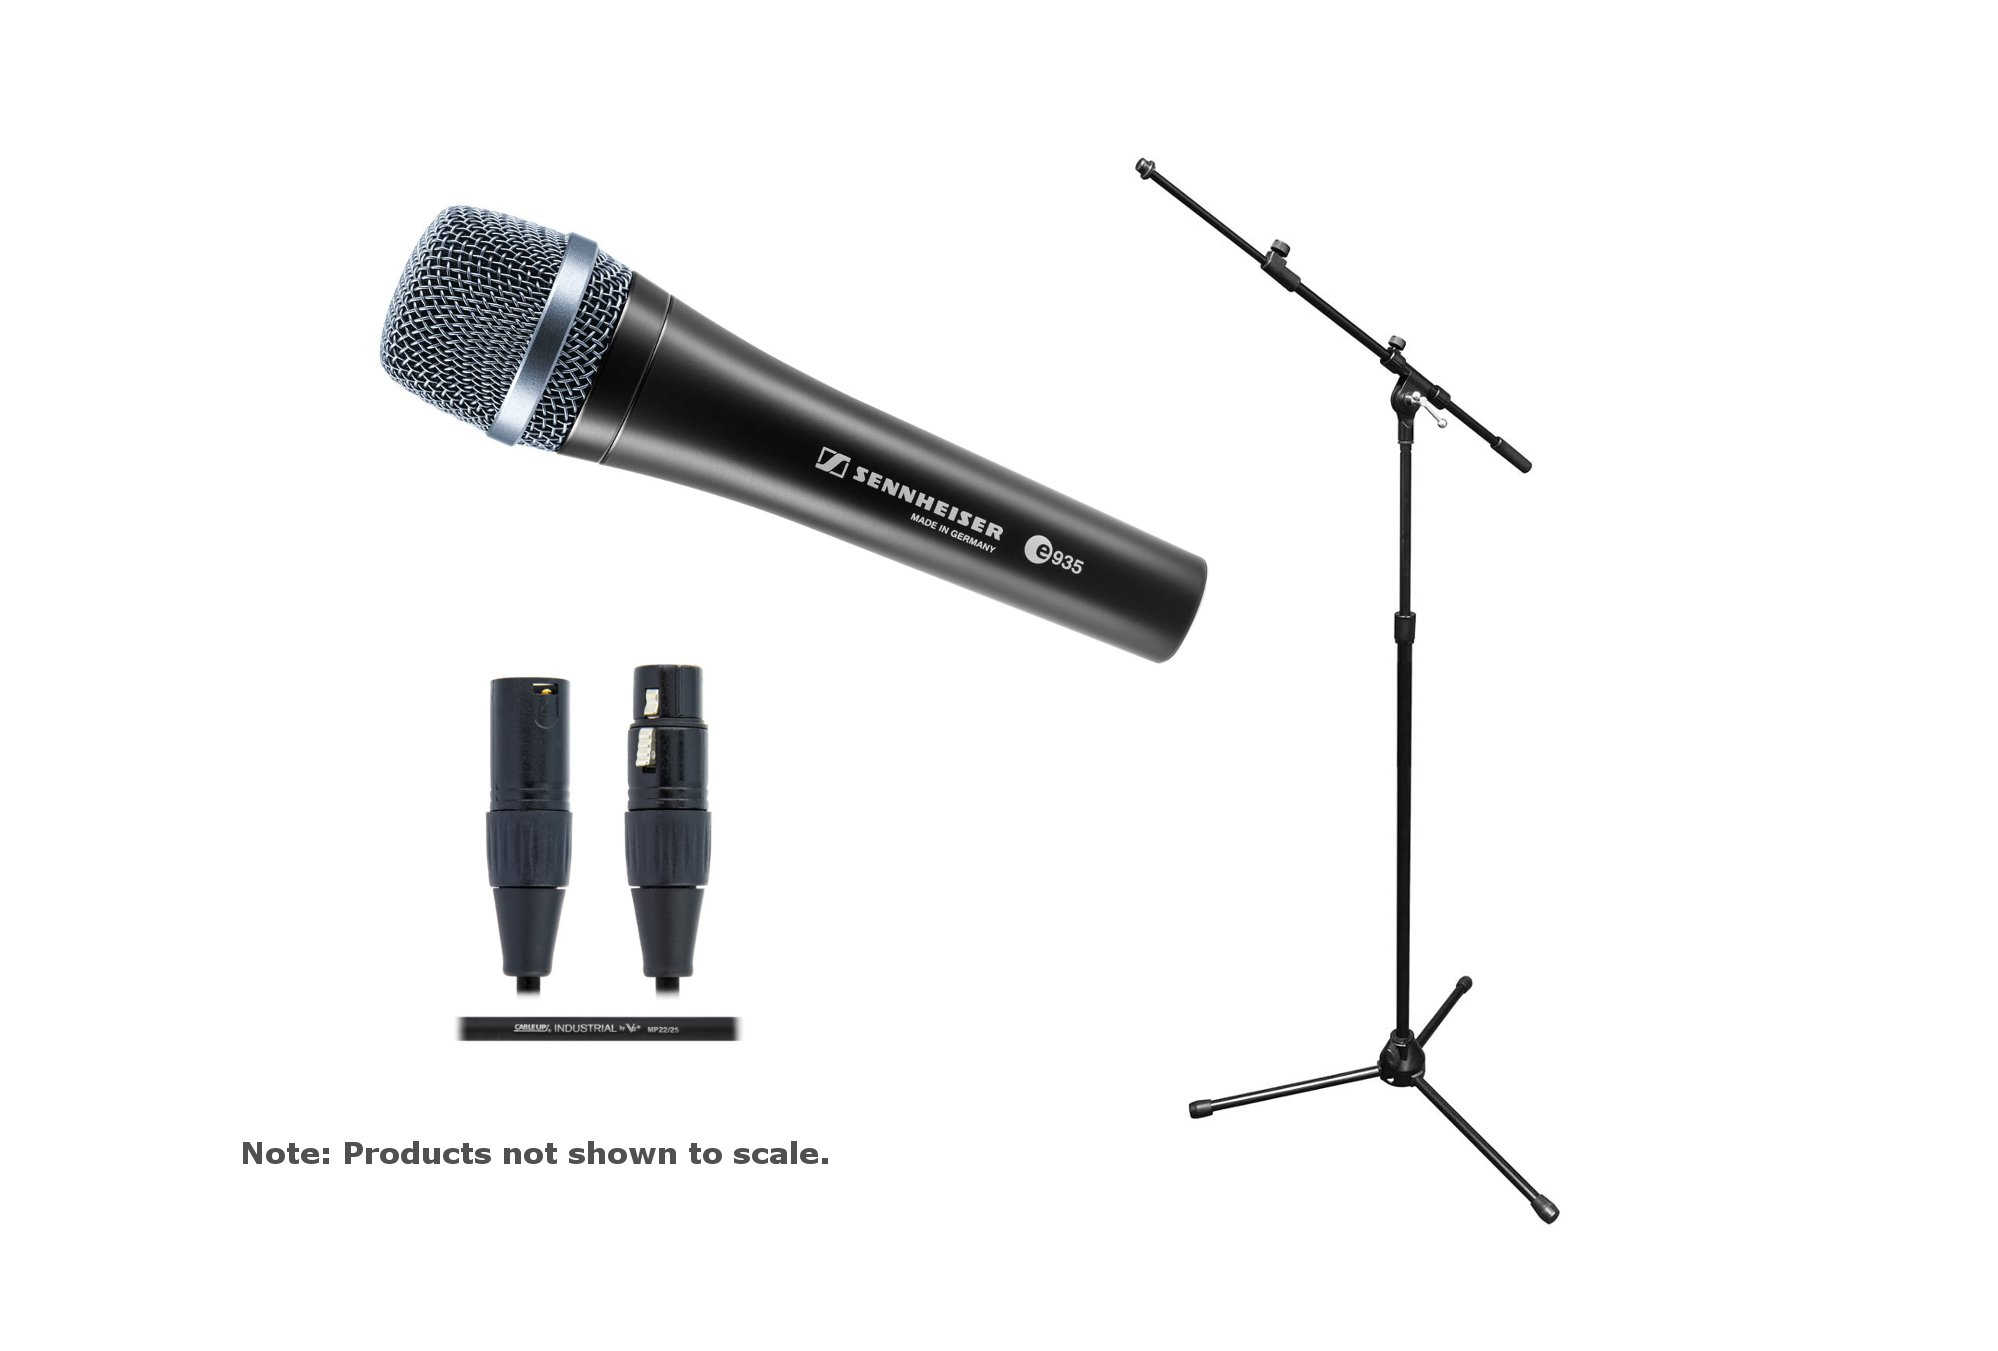 Sennheiser e 935 / Stand / Cable Bundle e 935 Mic with Tripod Mic Stand/Boom and 20ft Cable E935-SOLO-K